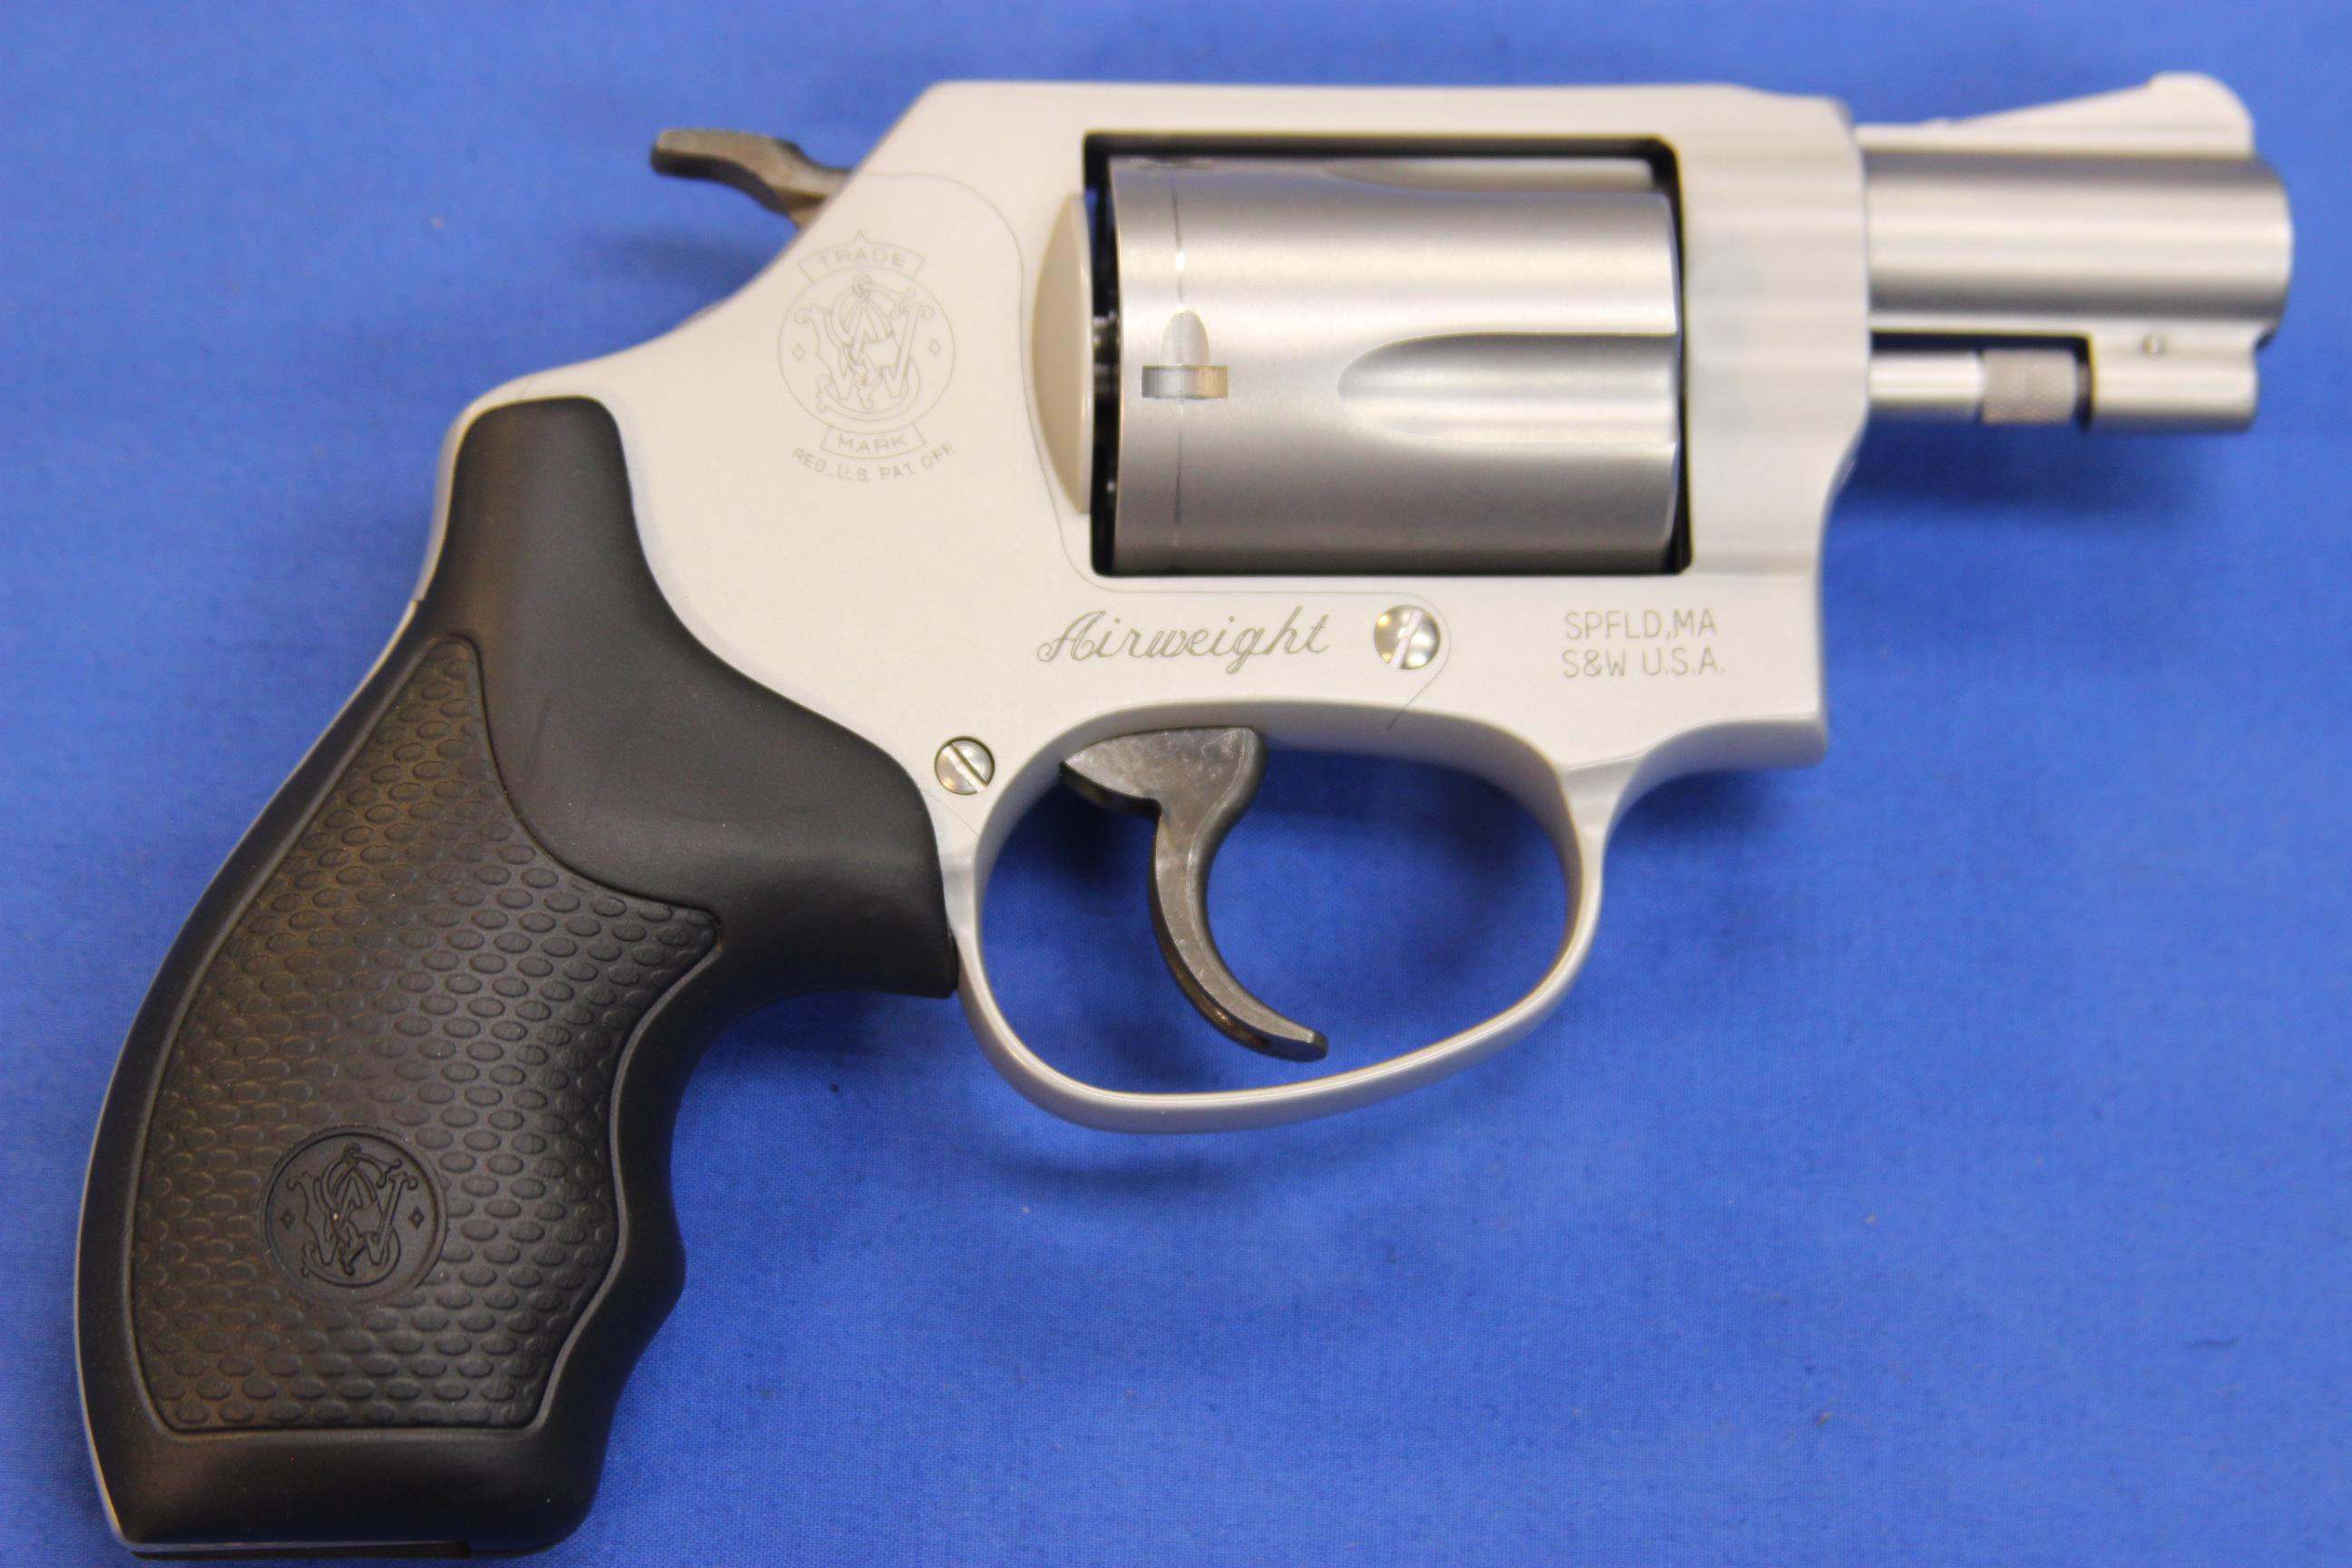 SMITH & WESSON 637-2 .38 SPECIAL +P w/ BOX  Guns > Pistols > Smith & Wesson Revolvers > Pocket Pistols